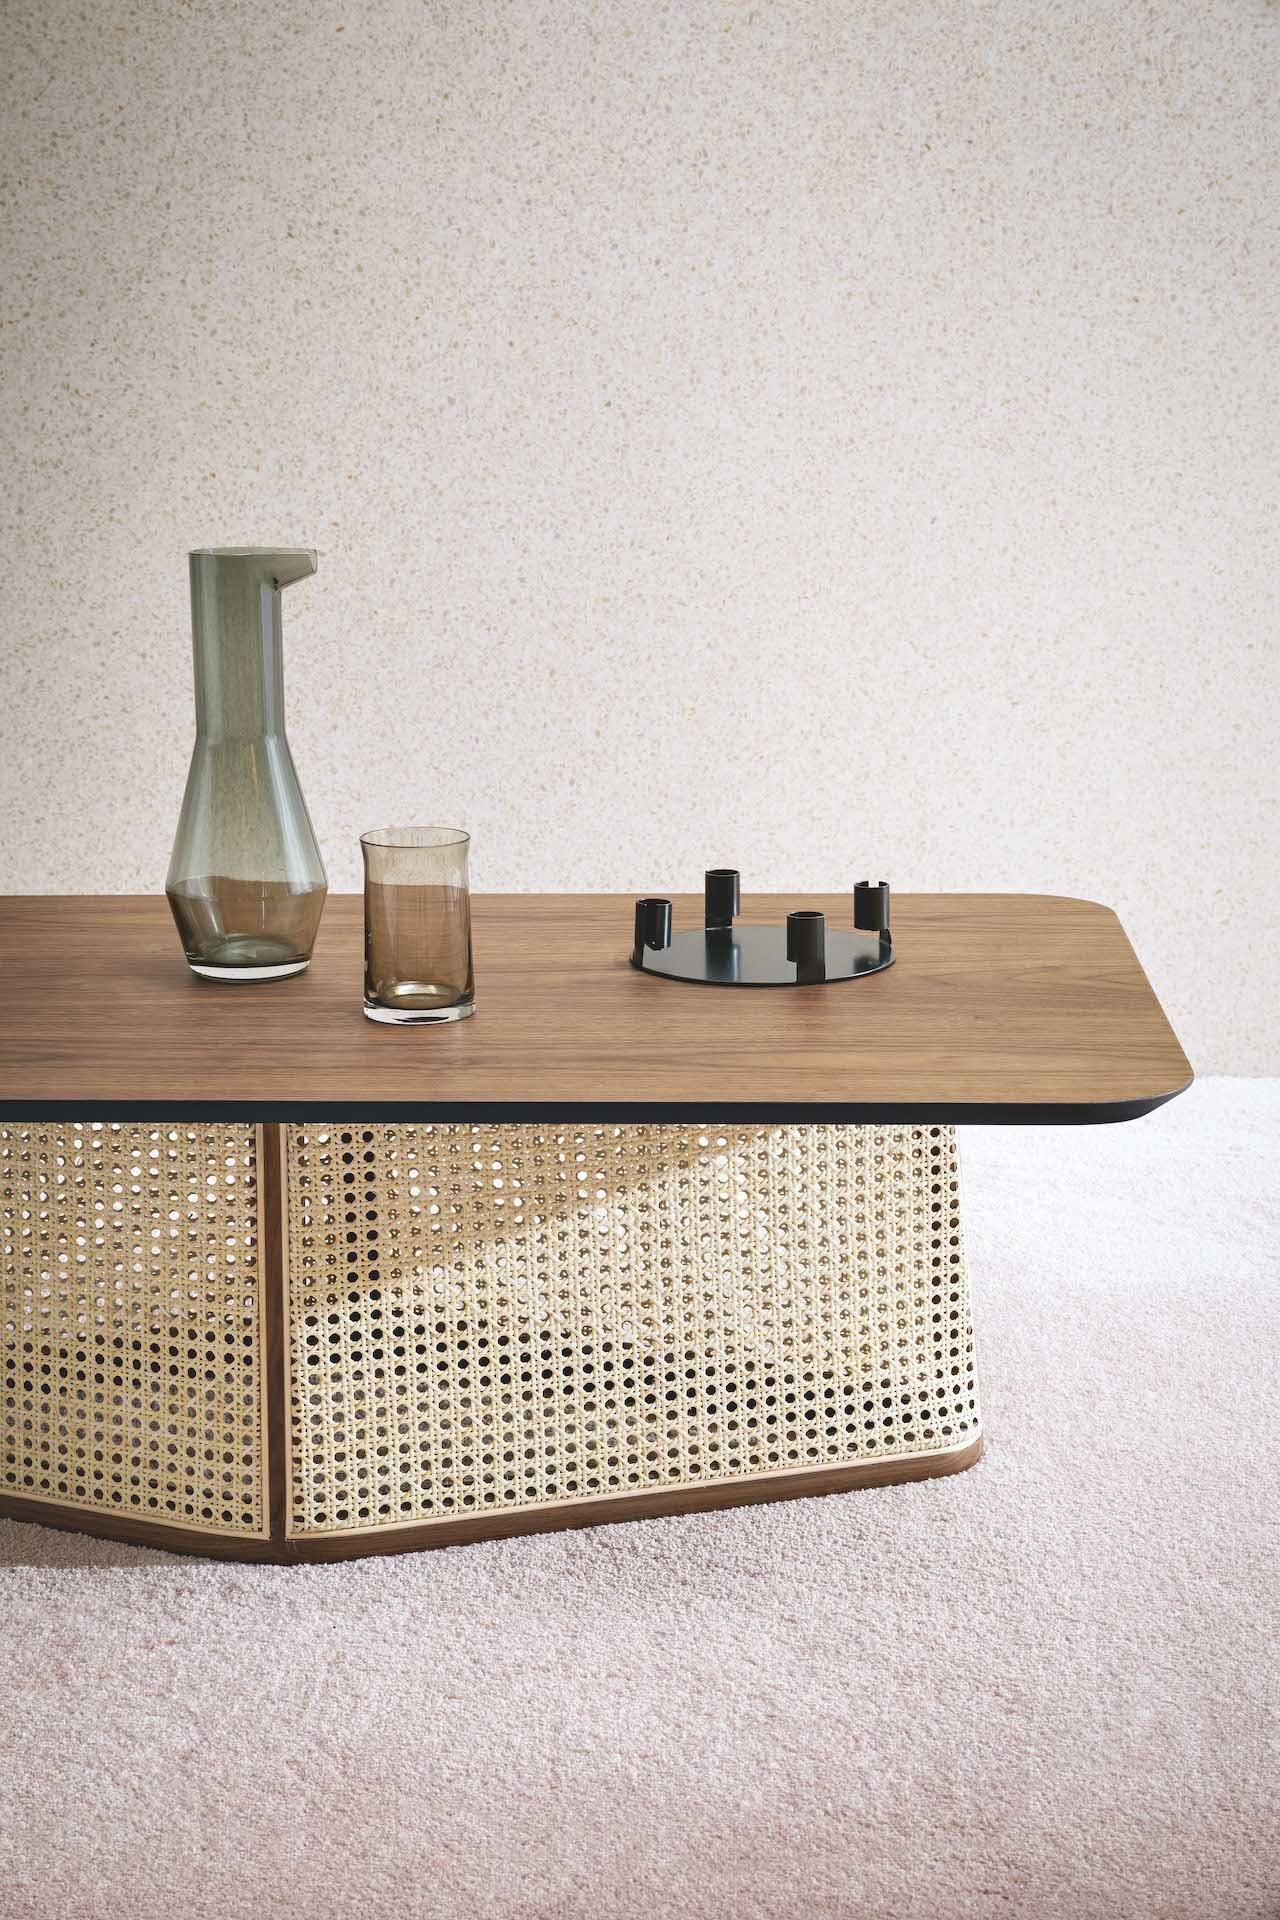 Colony Coffee Table from Miniforms, designed by Skrivo